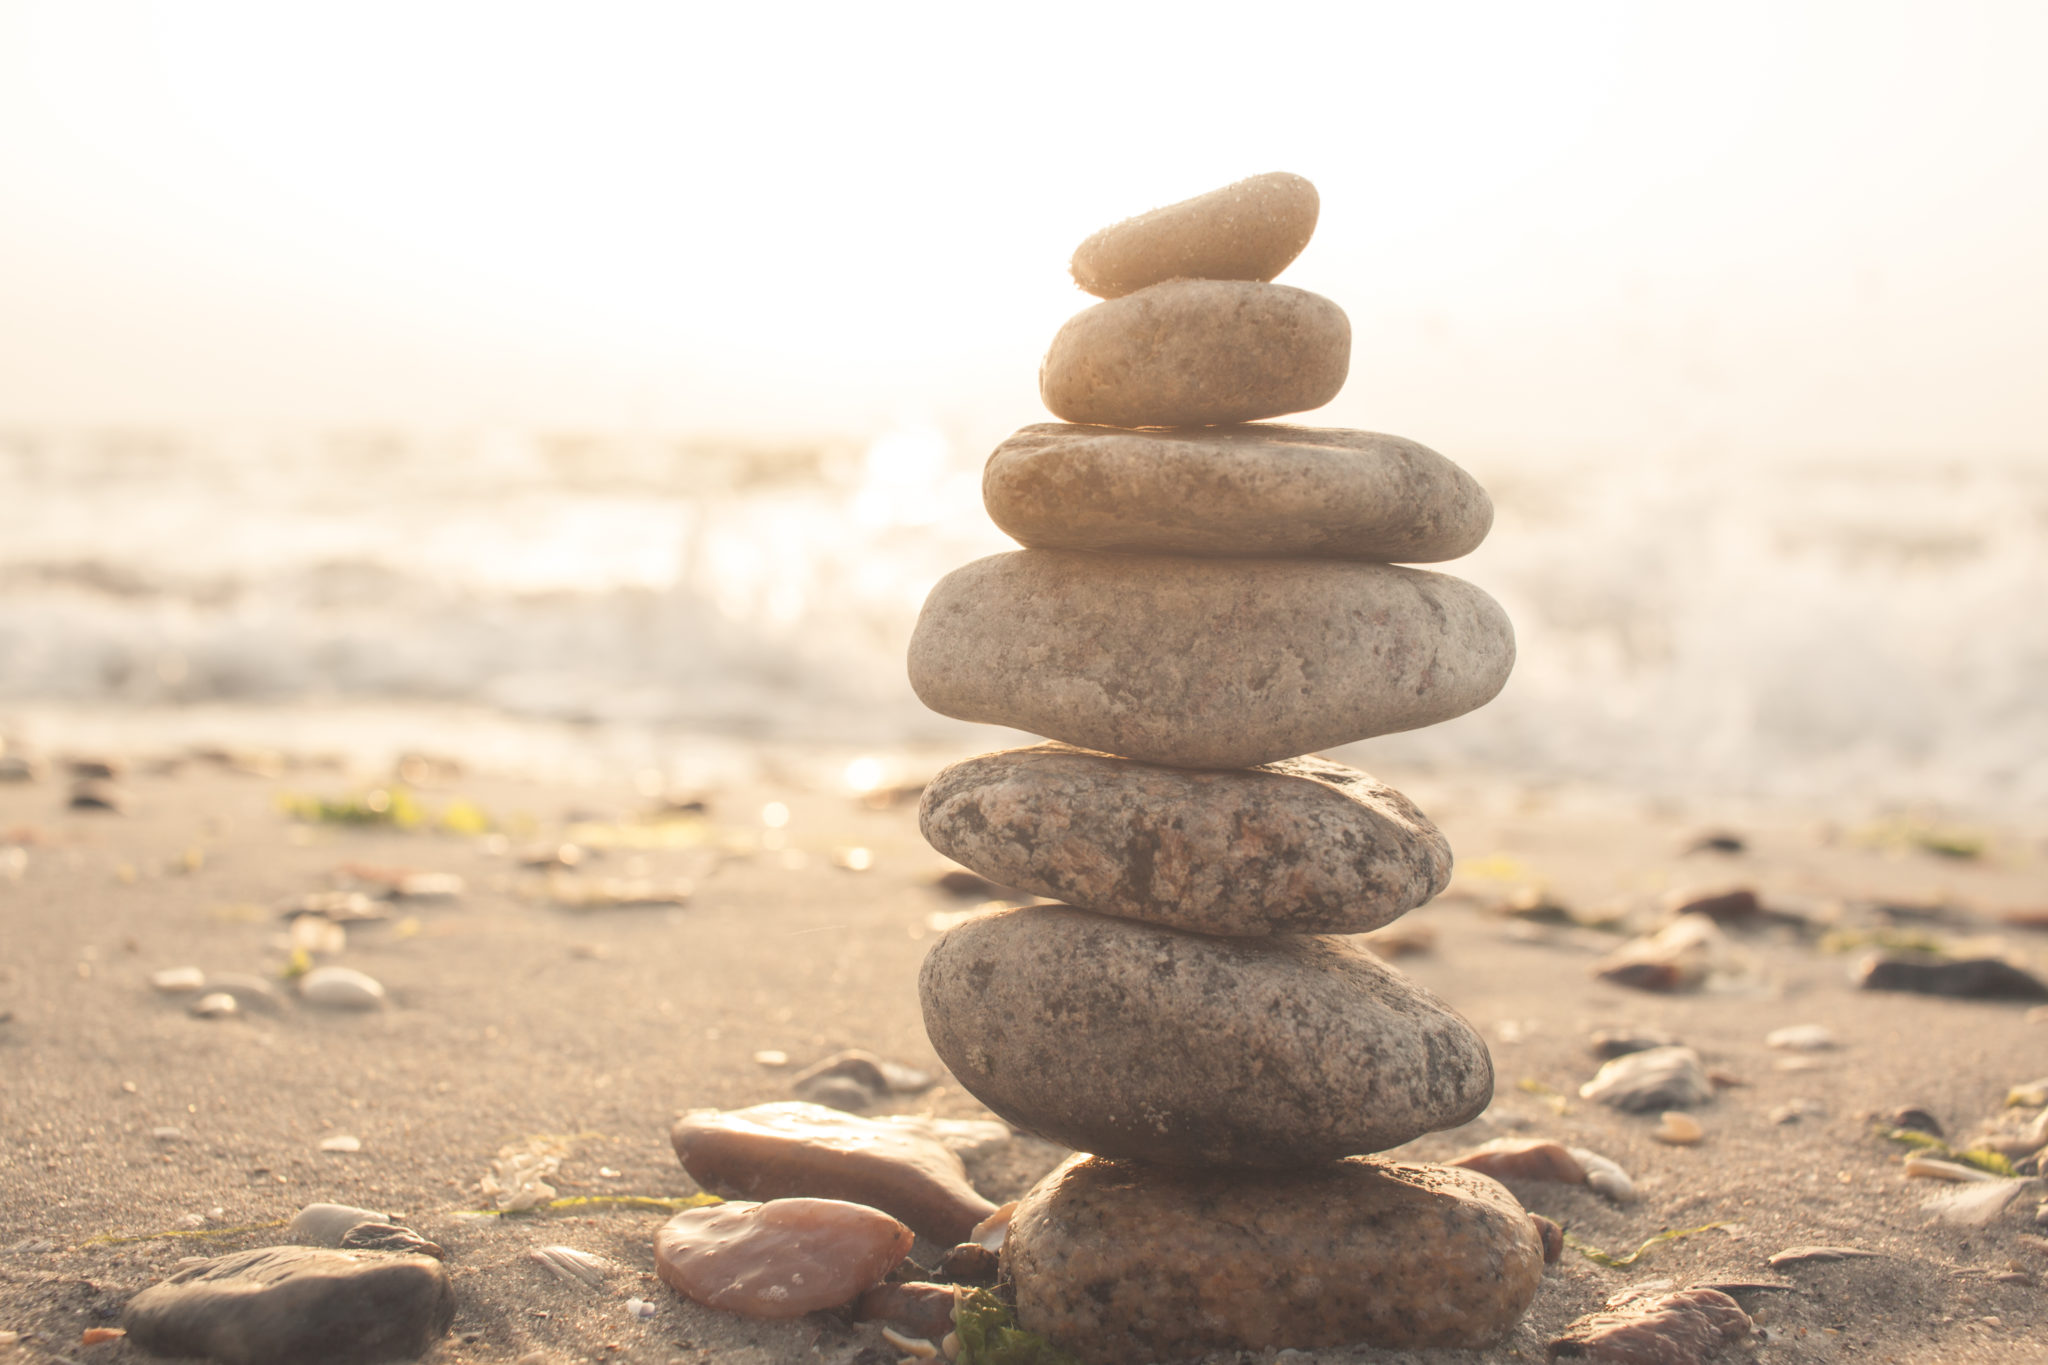 mindfulness improves calm, concentration and focus